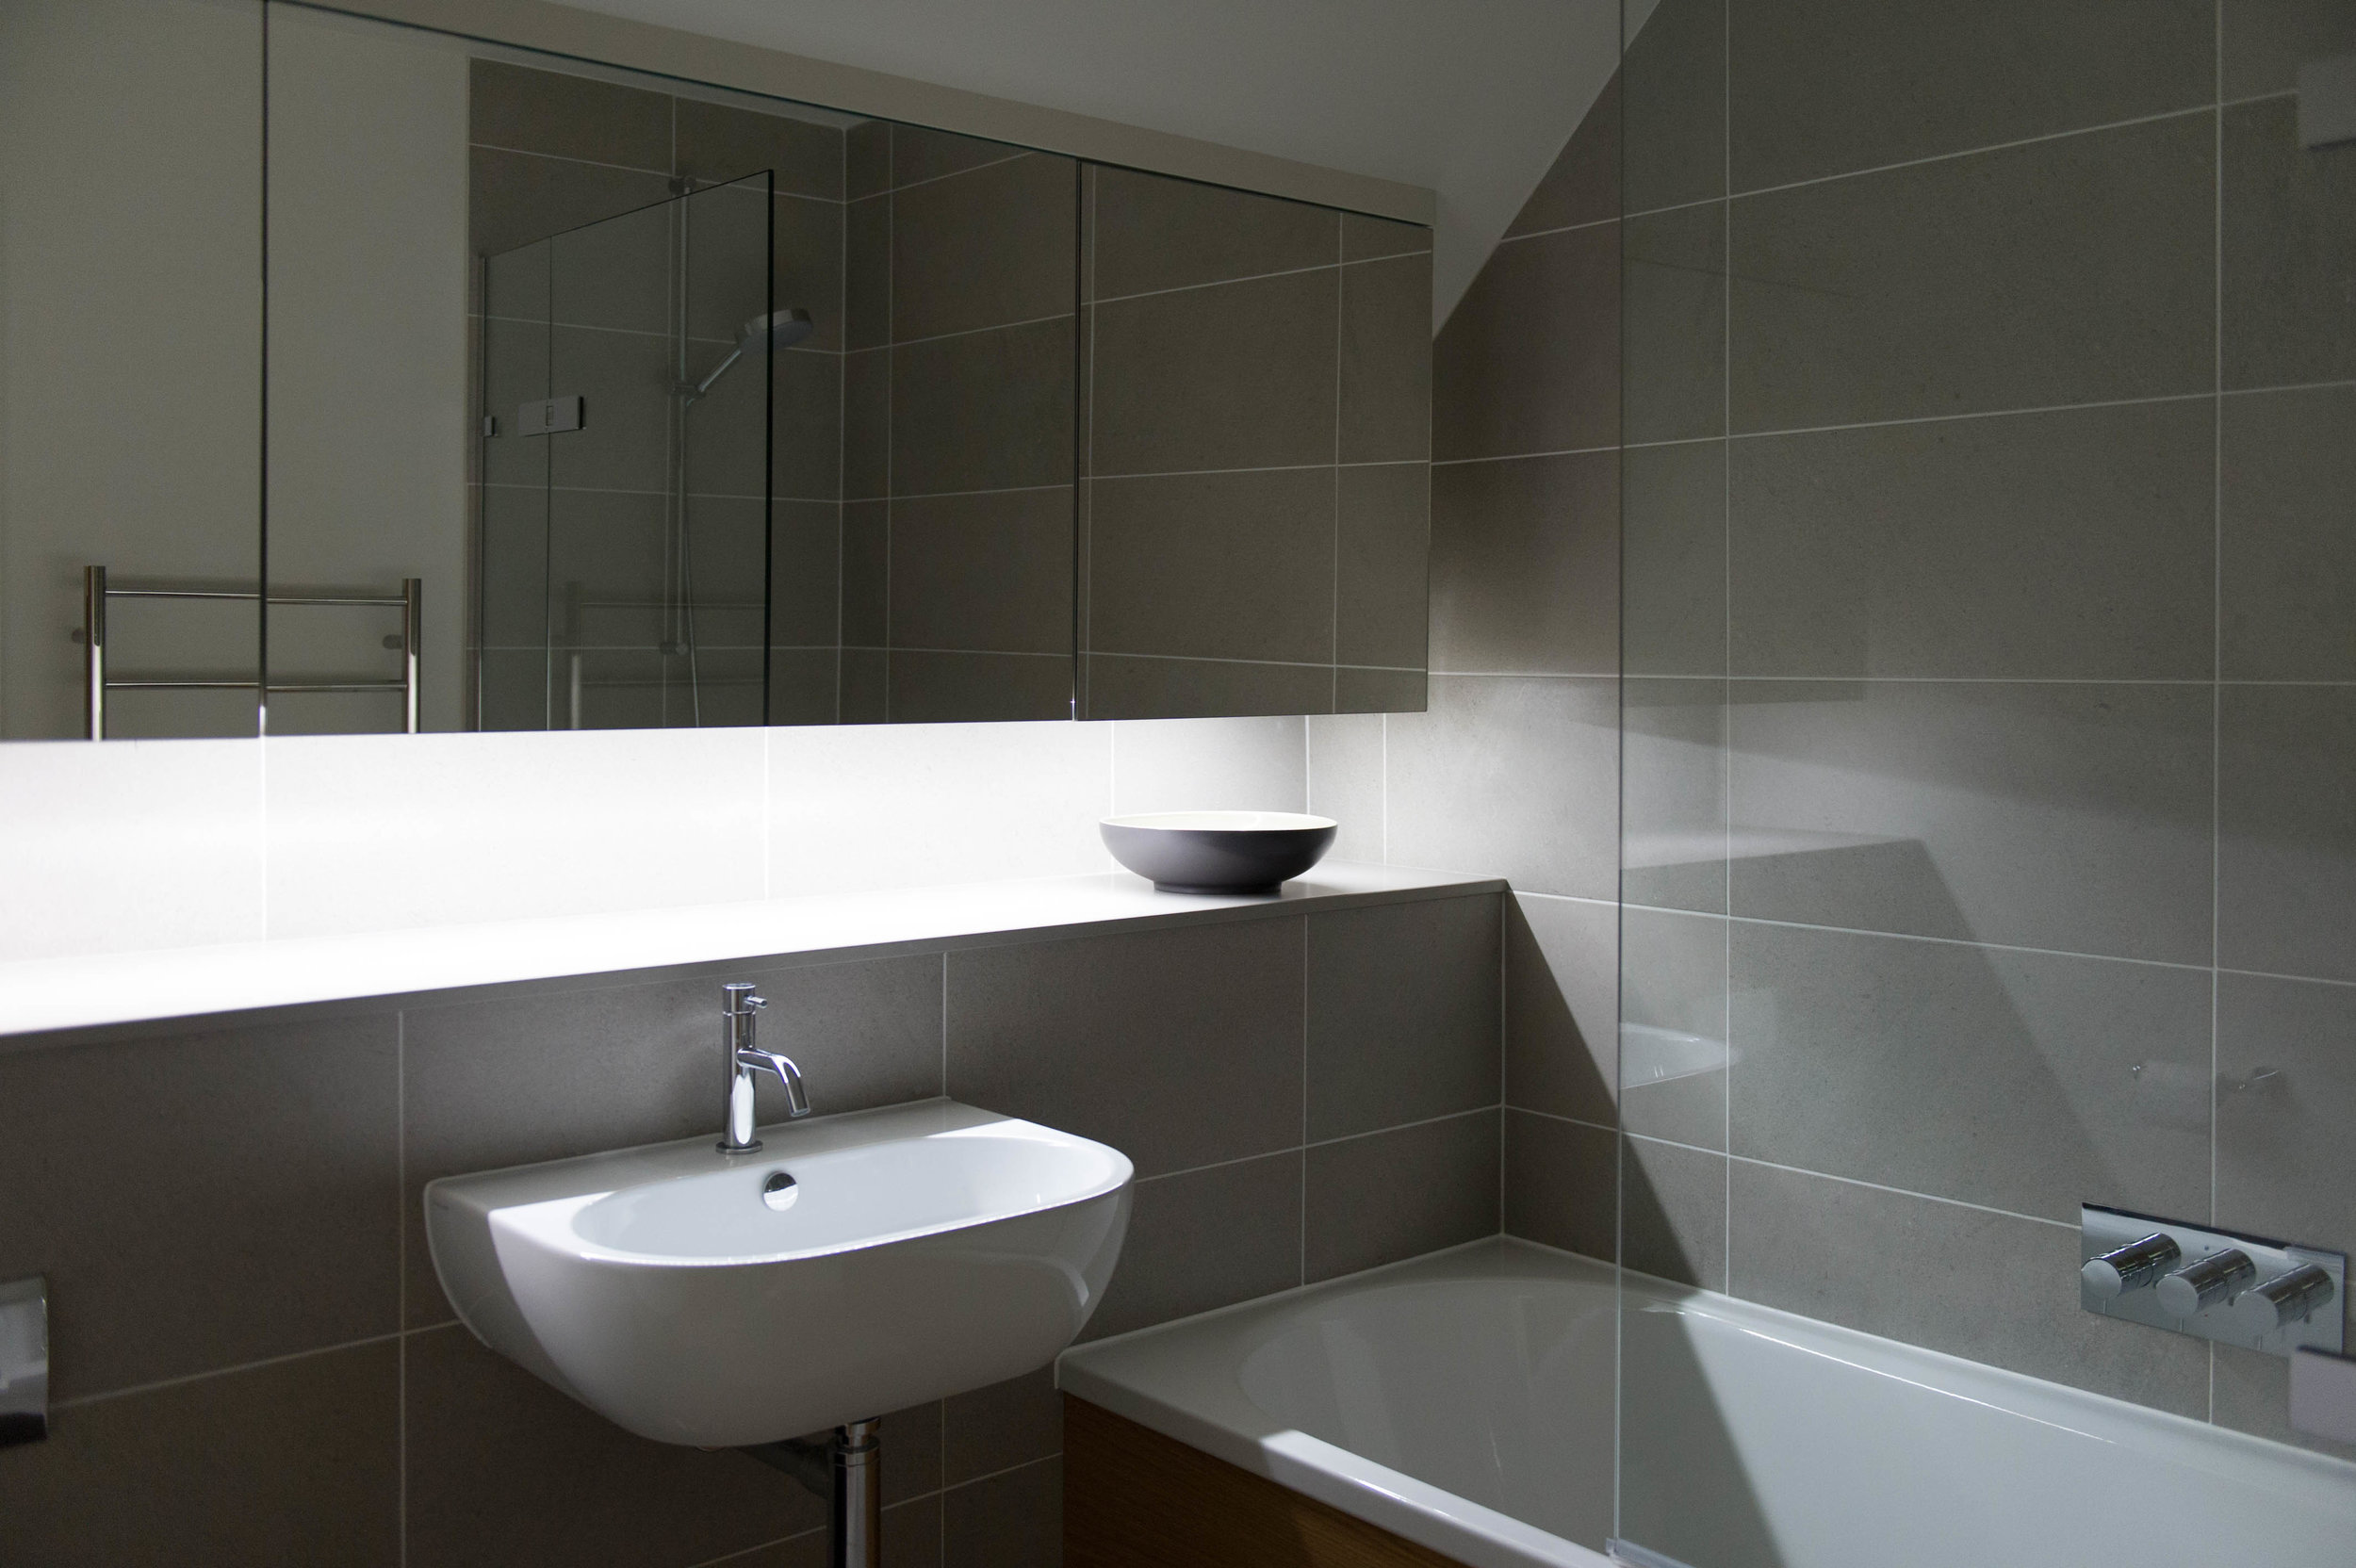 Contemporary bathroom design with white basin and bath, large format grey tiles and bespoke mirrored cabinet.